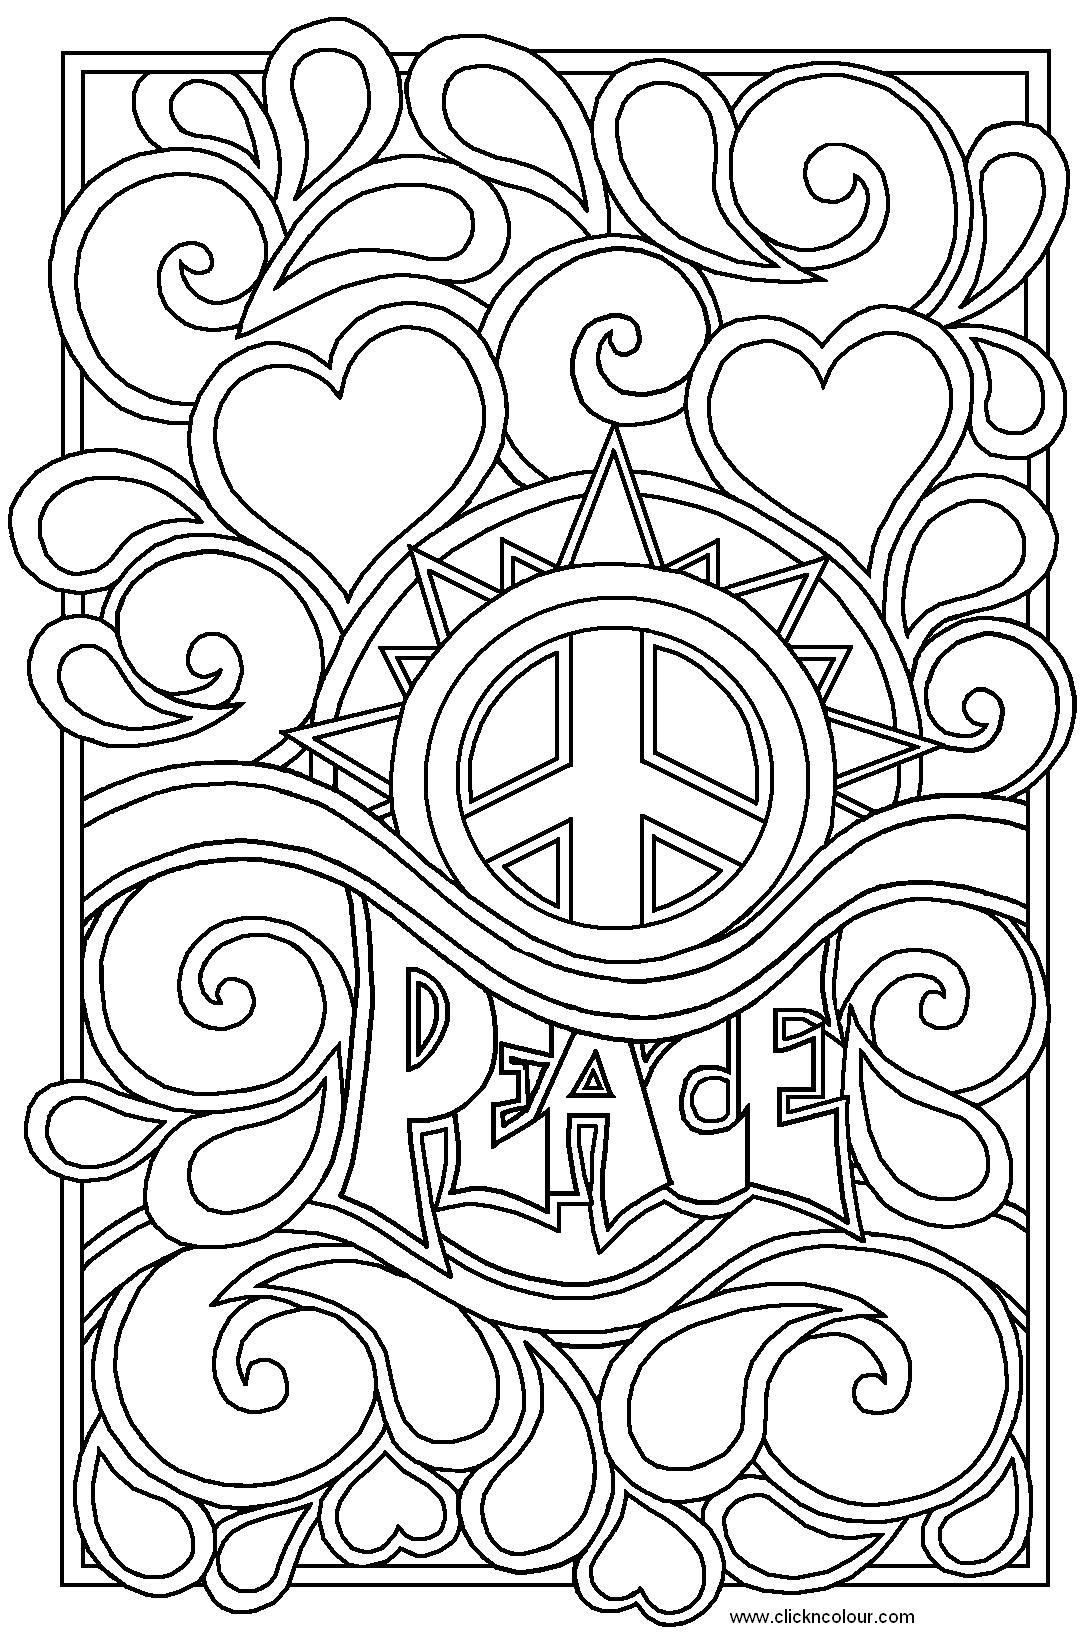 Heart coloring pages for teenagers peace and love colouring pages